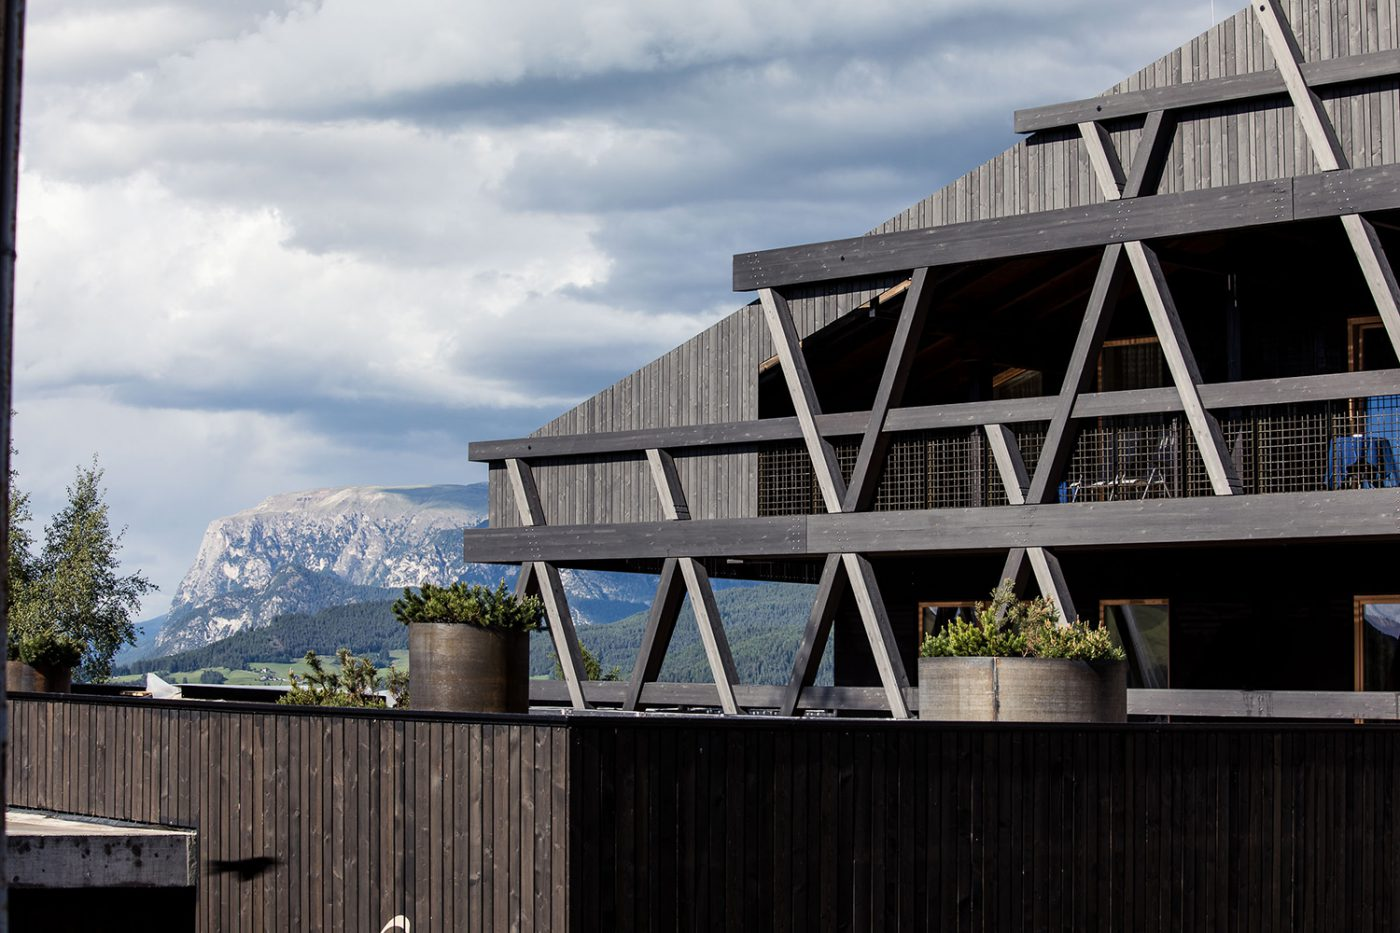 Facade of a hotel in South Tyrol in laminated wood